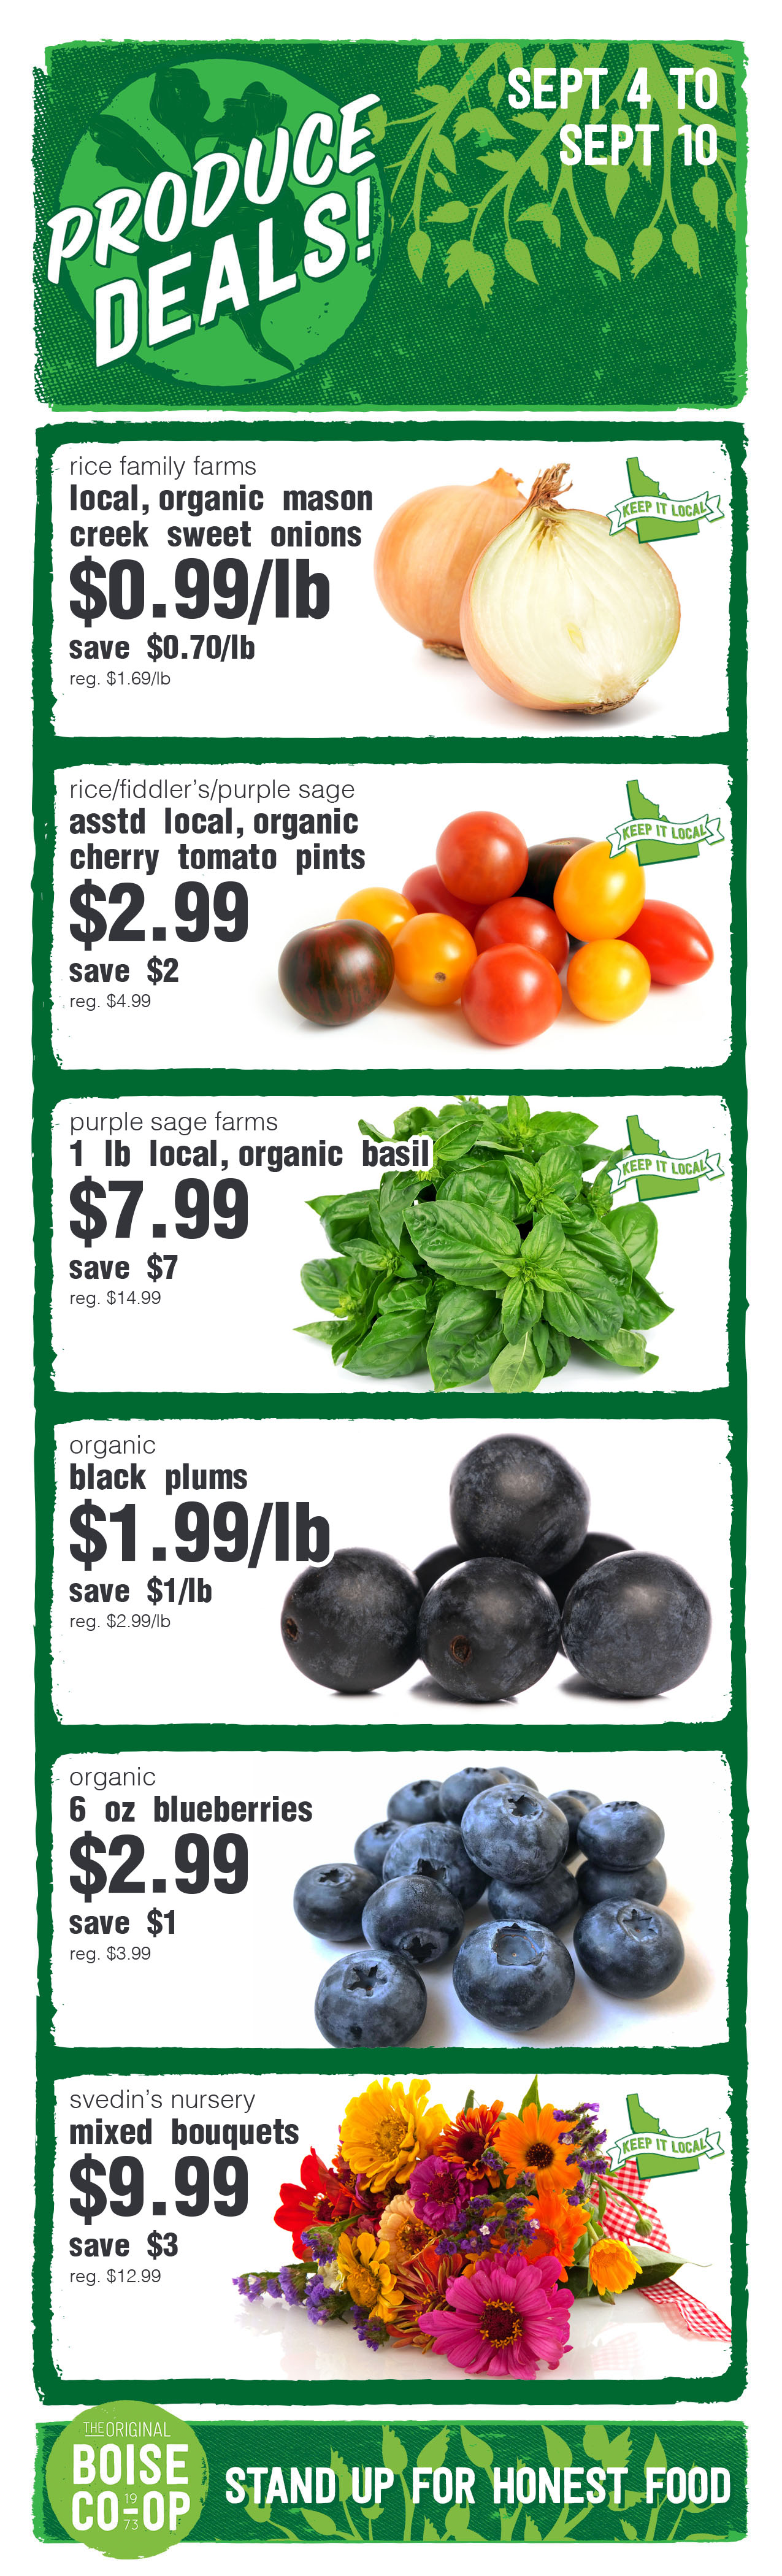 produce deals FLYER 9.4-9.17 pic.jpg